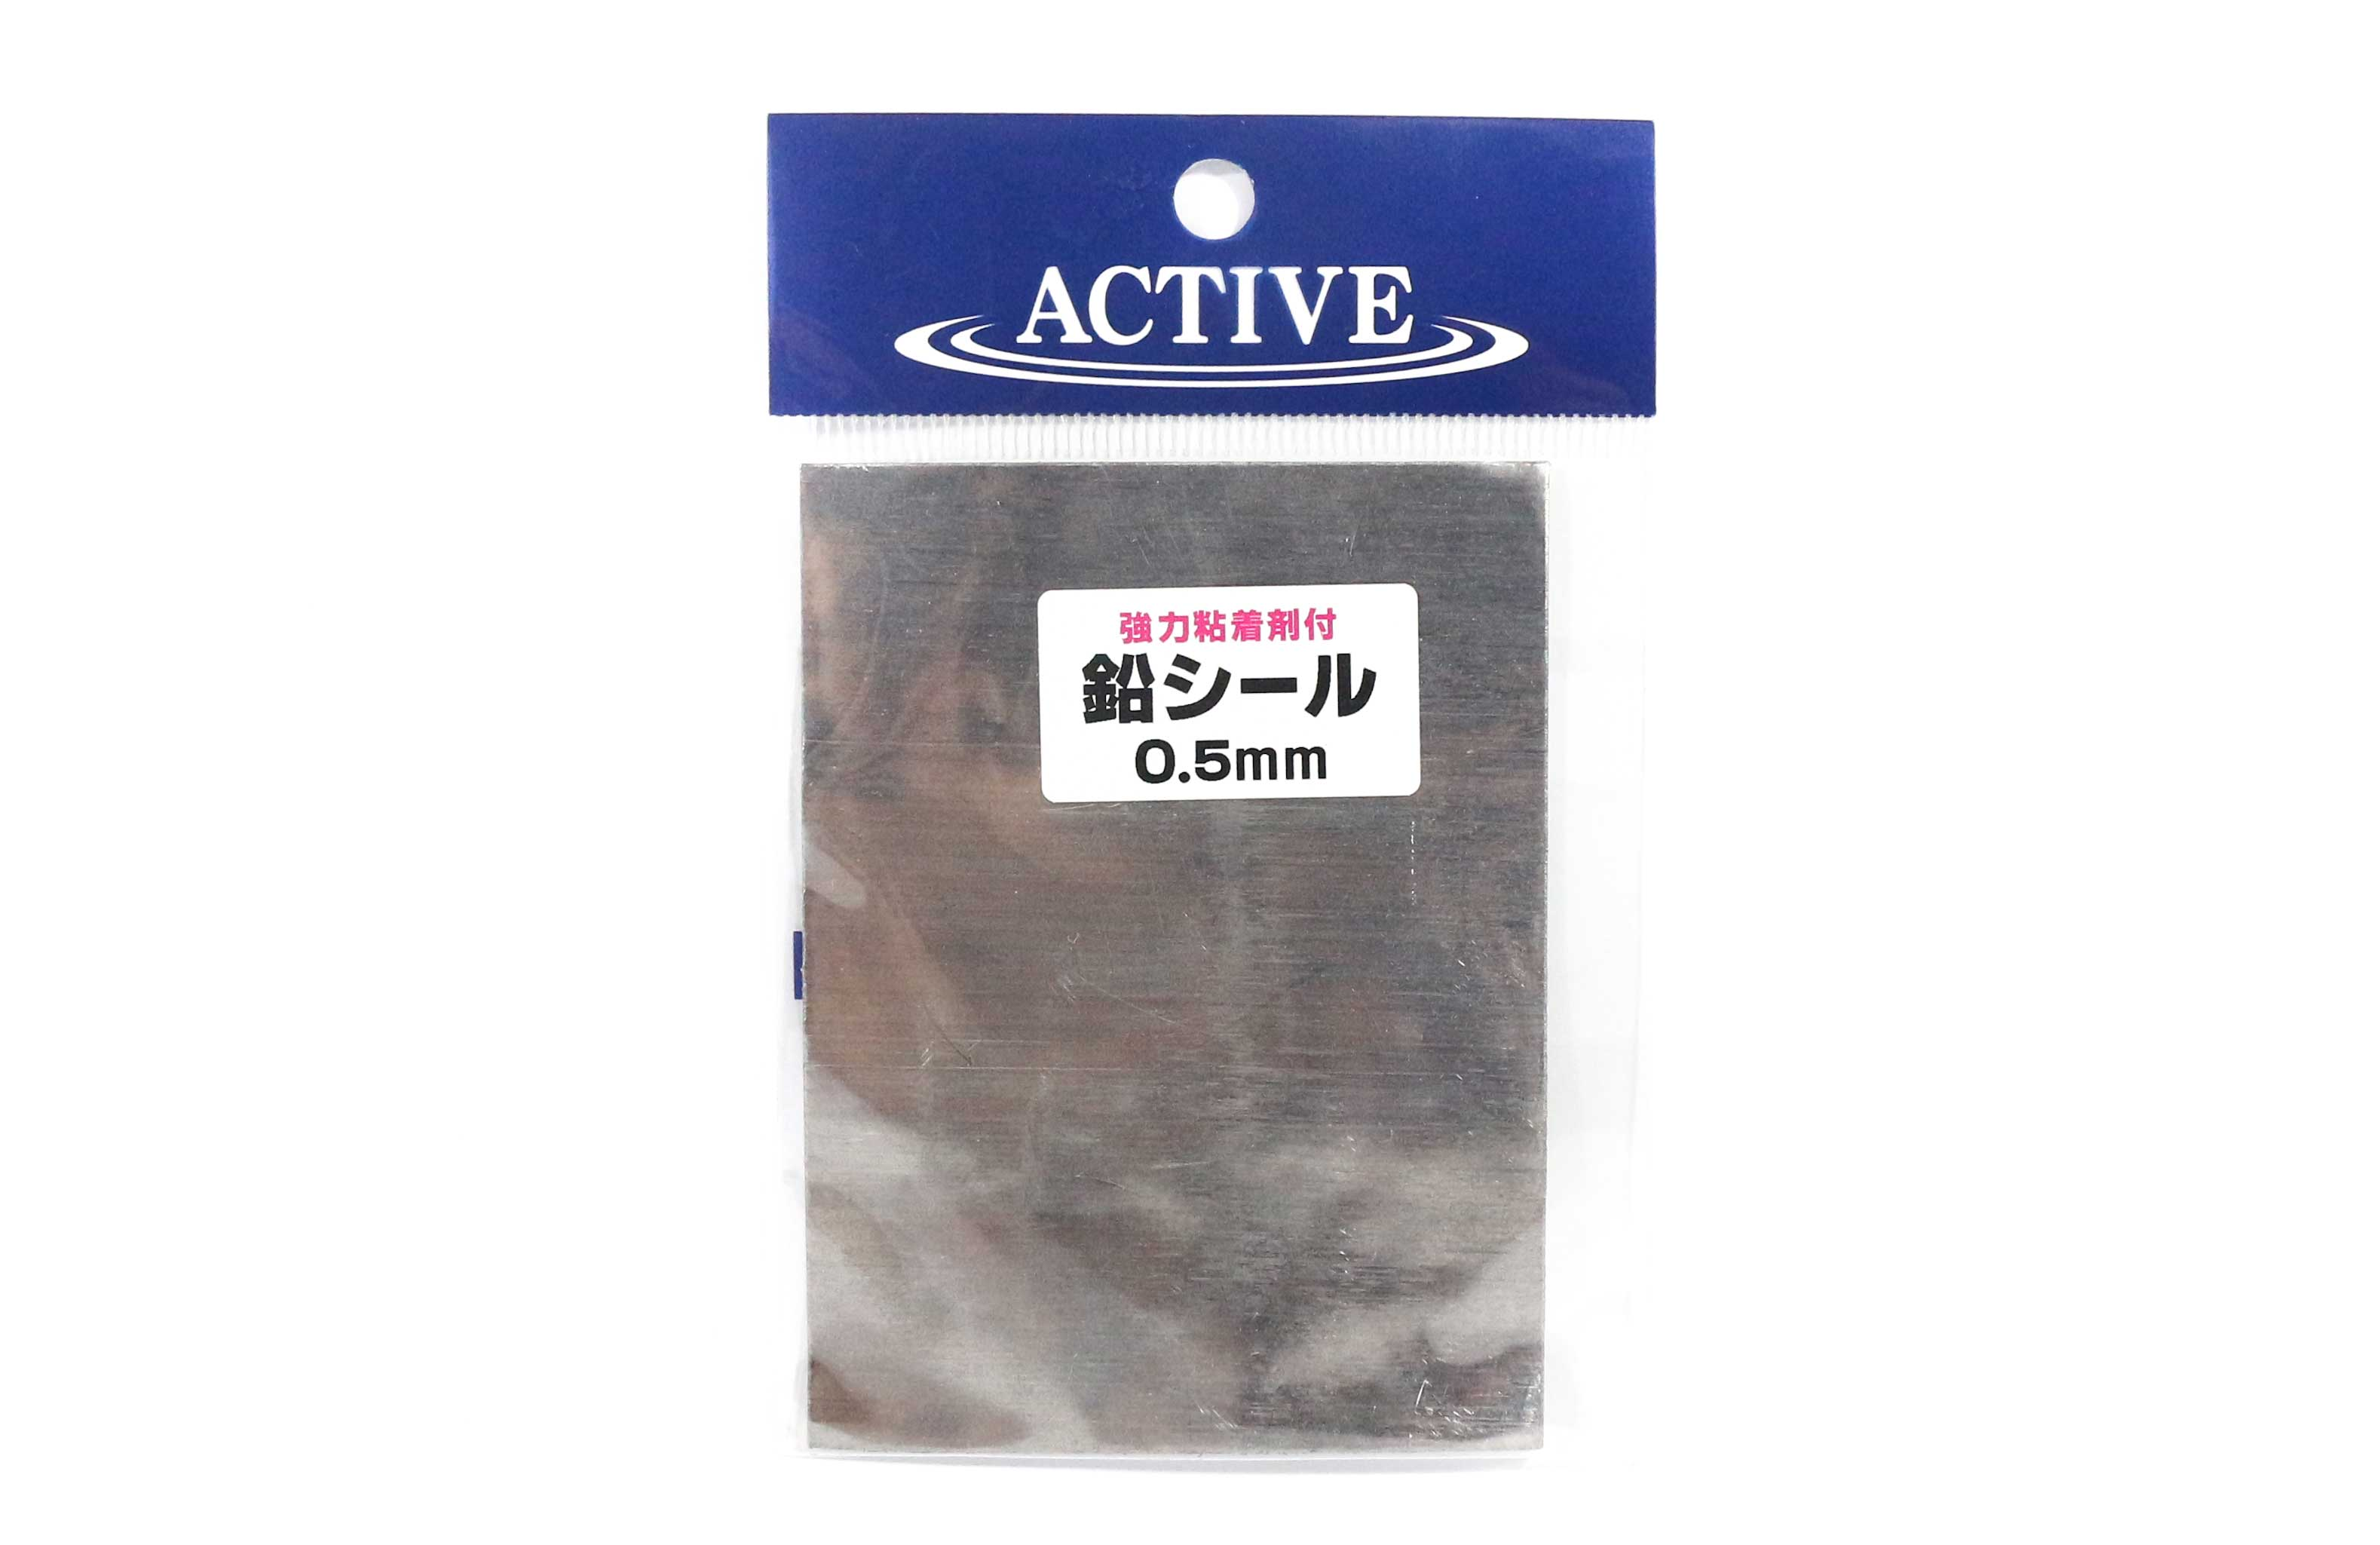 Active Lead Seal 0.5mm x 10 cm x 7.5 cm (2026)